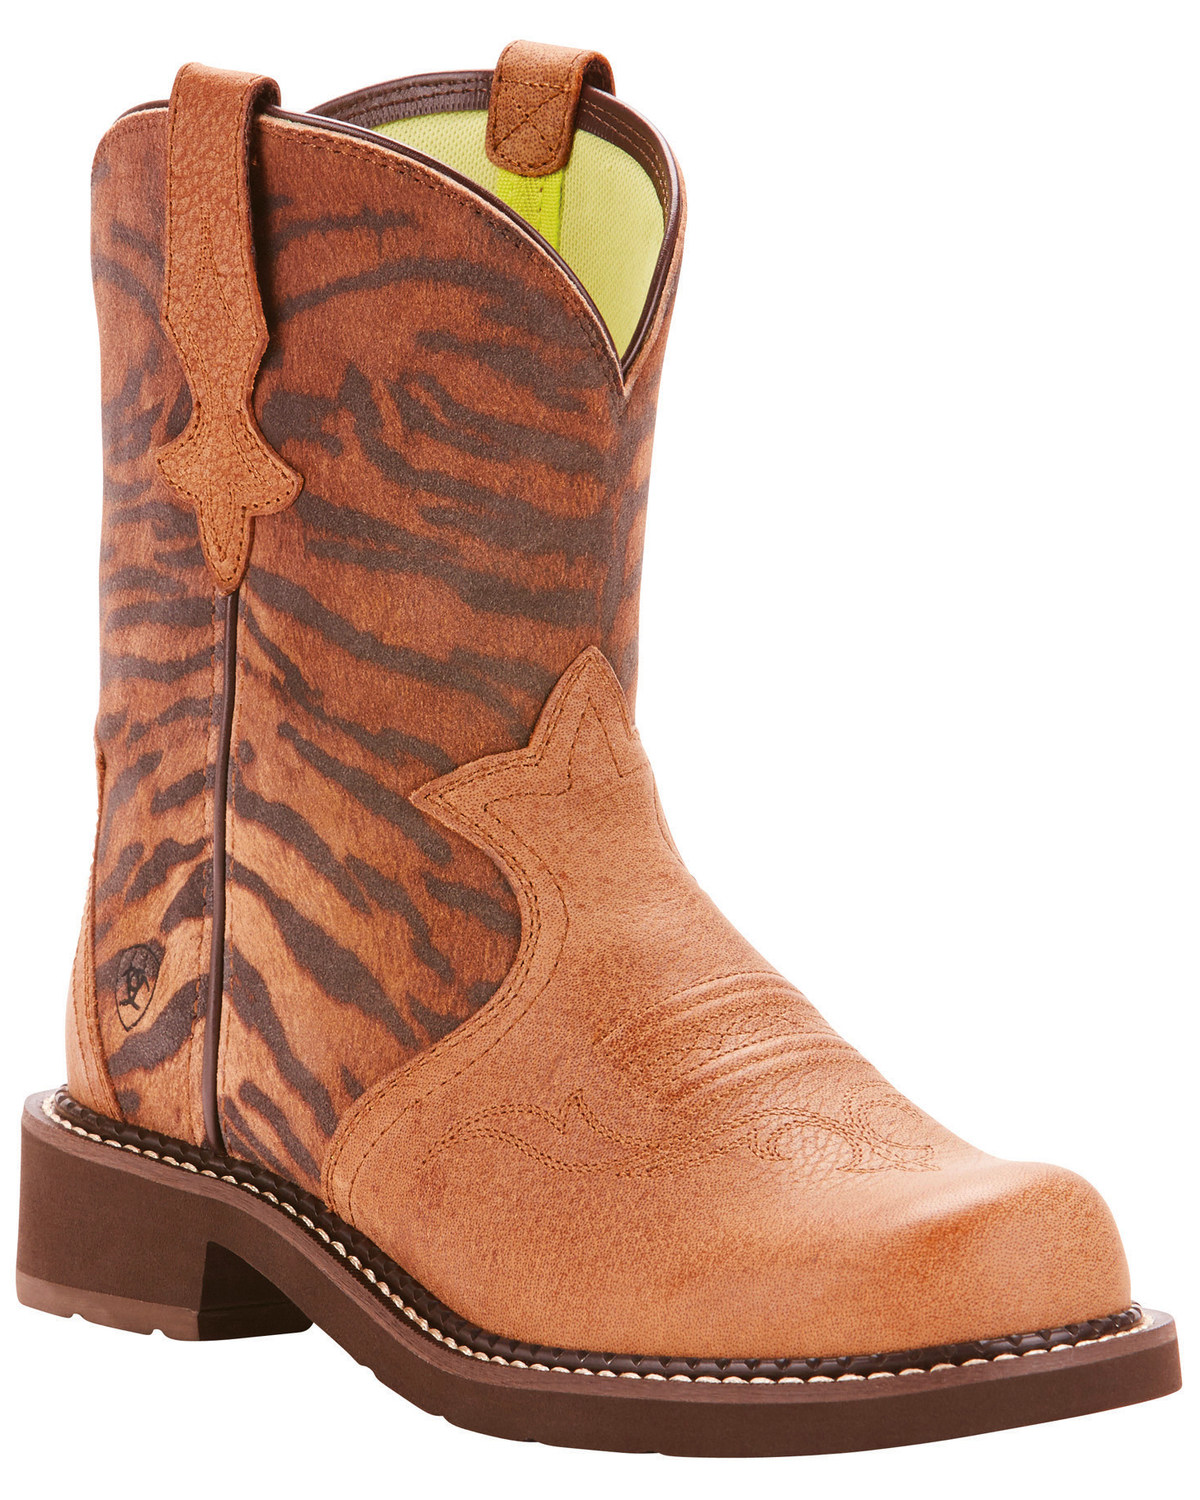 c3ec054a053 Ariat Fatbaby Women's Heritage Trio Vintage Tiger Print Cowgirl Boots -  Round Toe